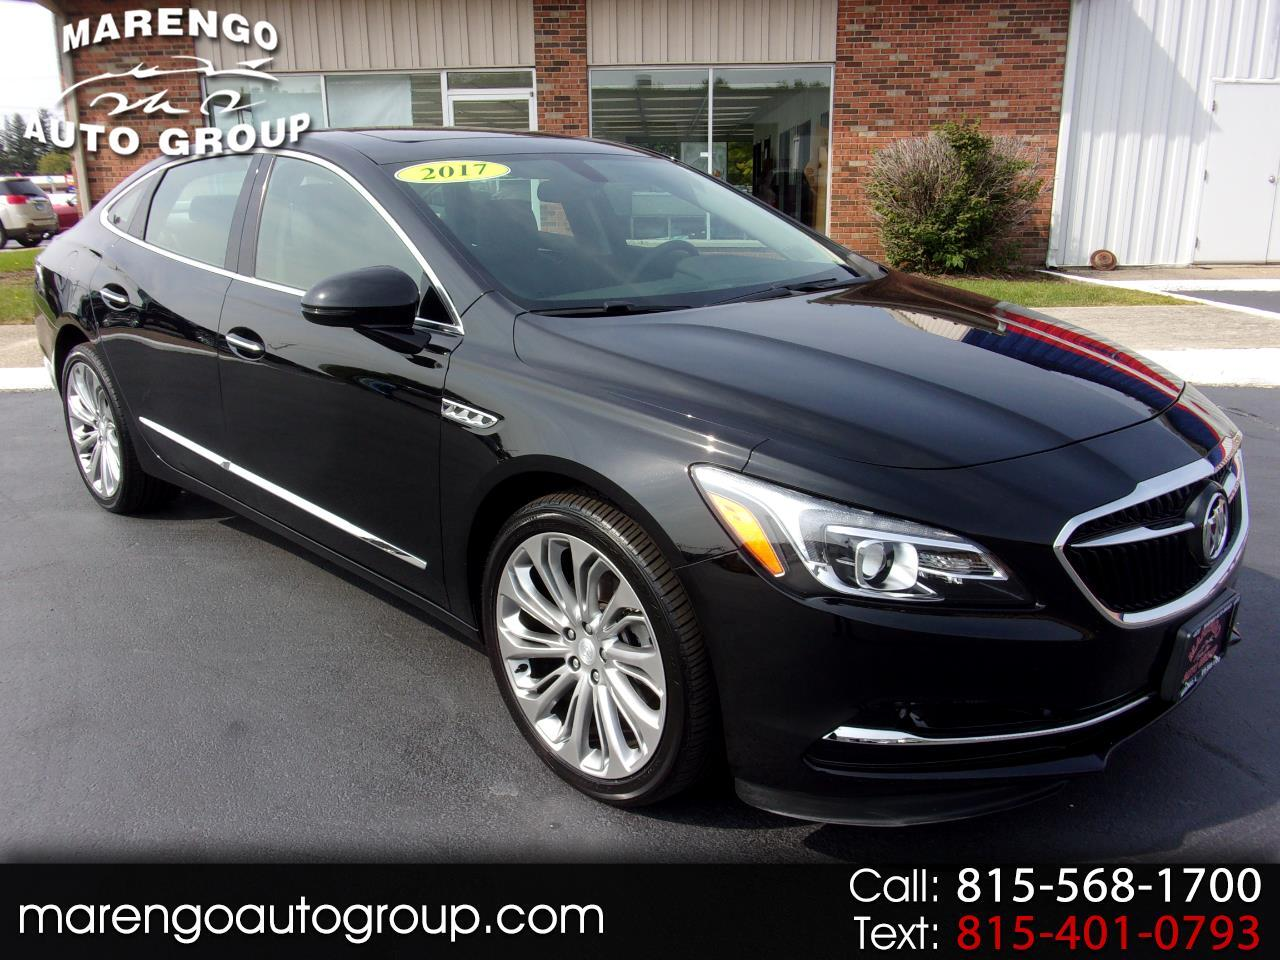 used 2017 Buick LaCrosse car, priced at $26,996